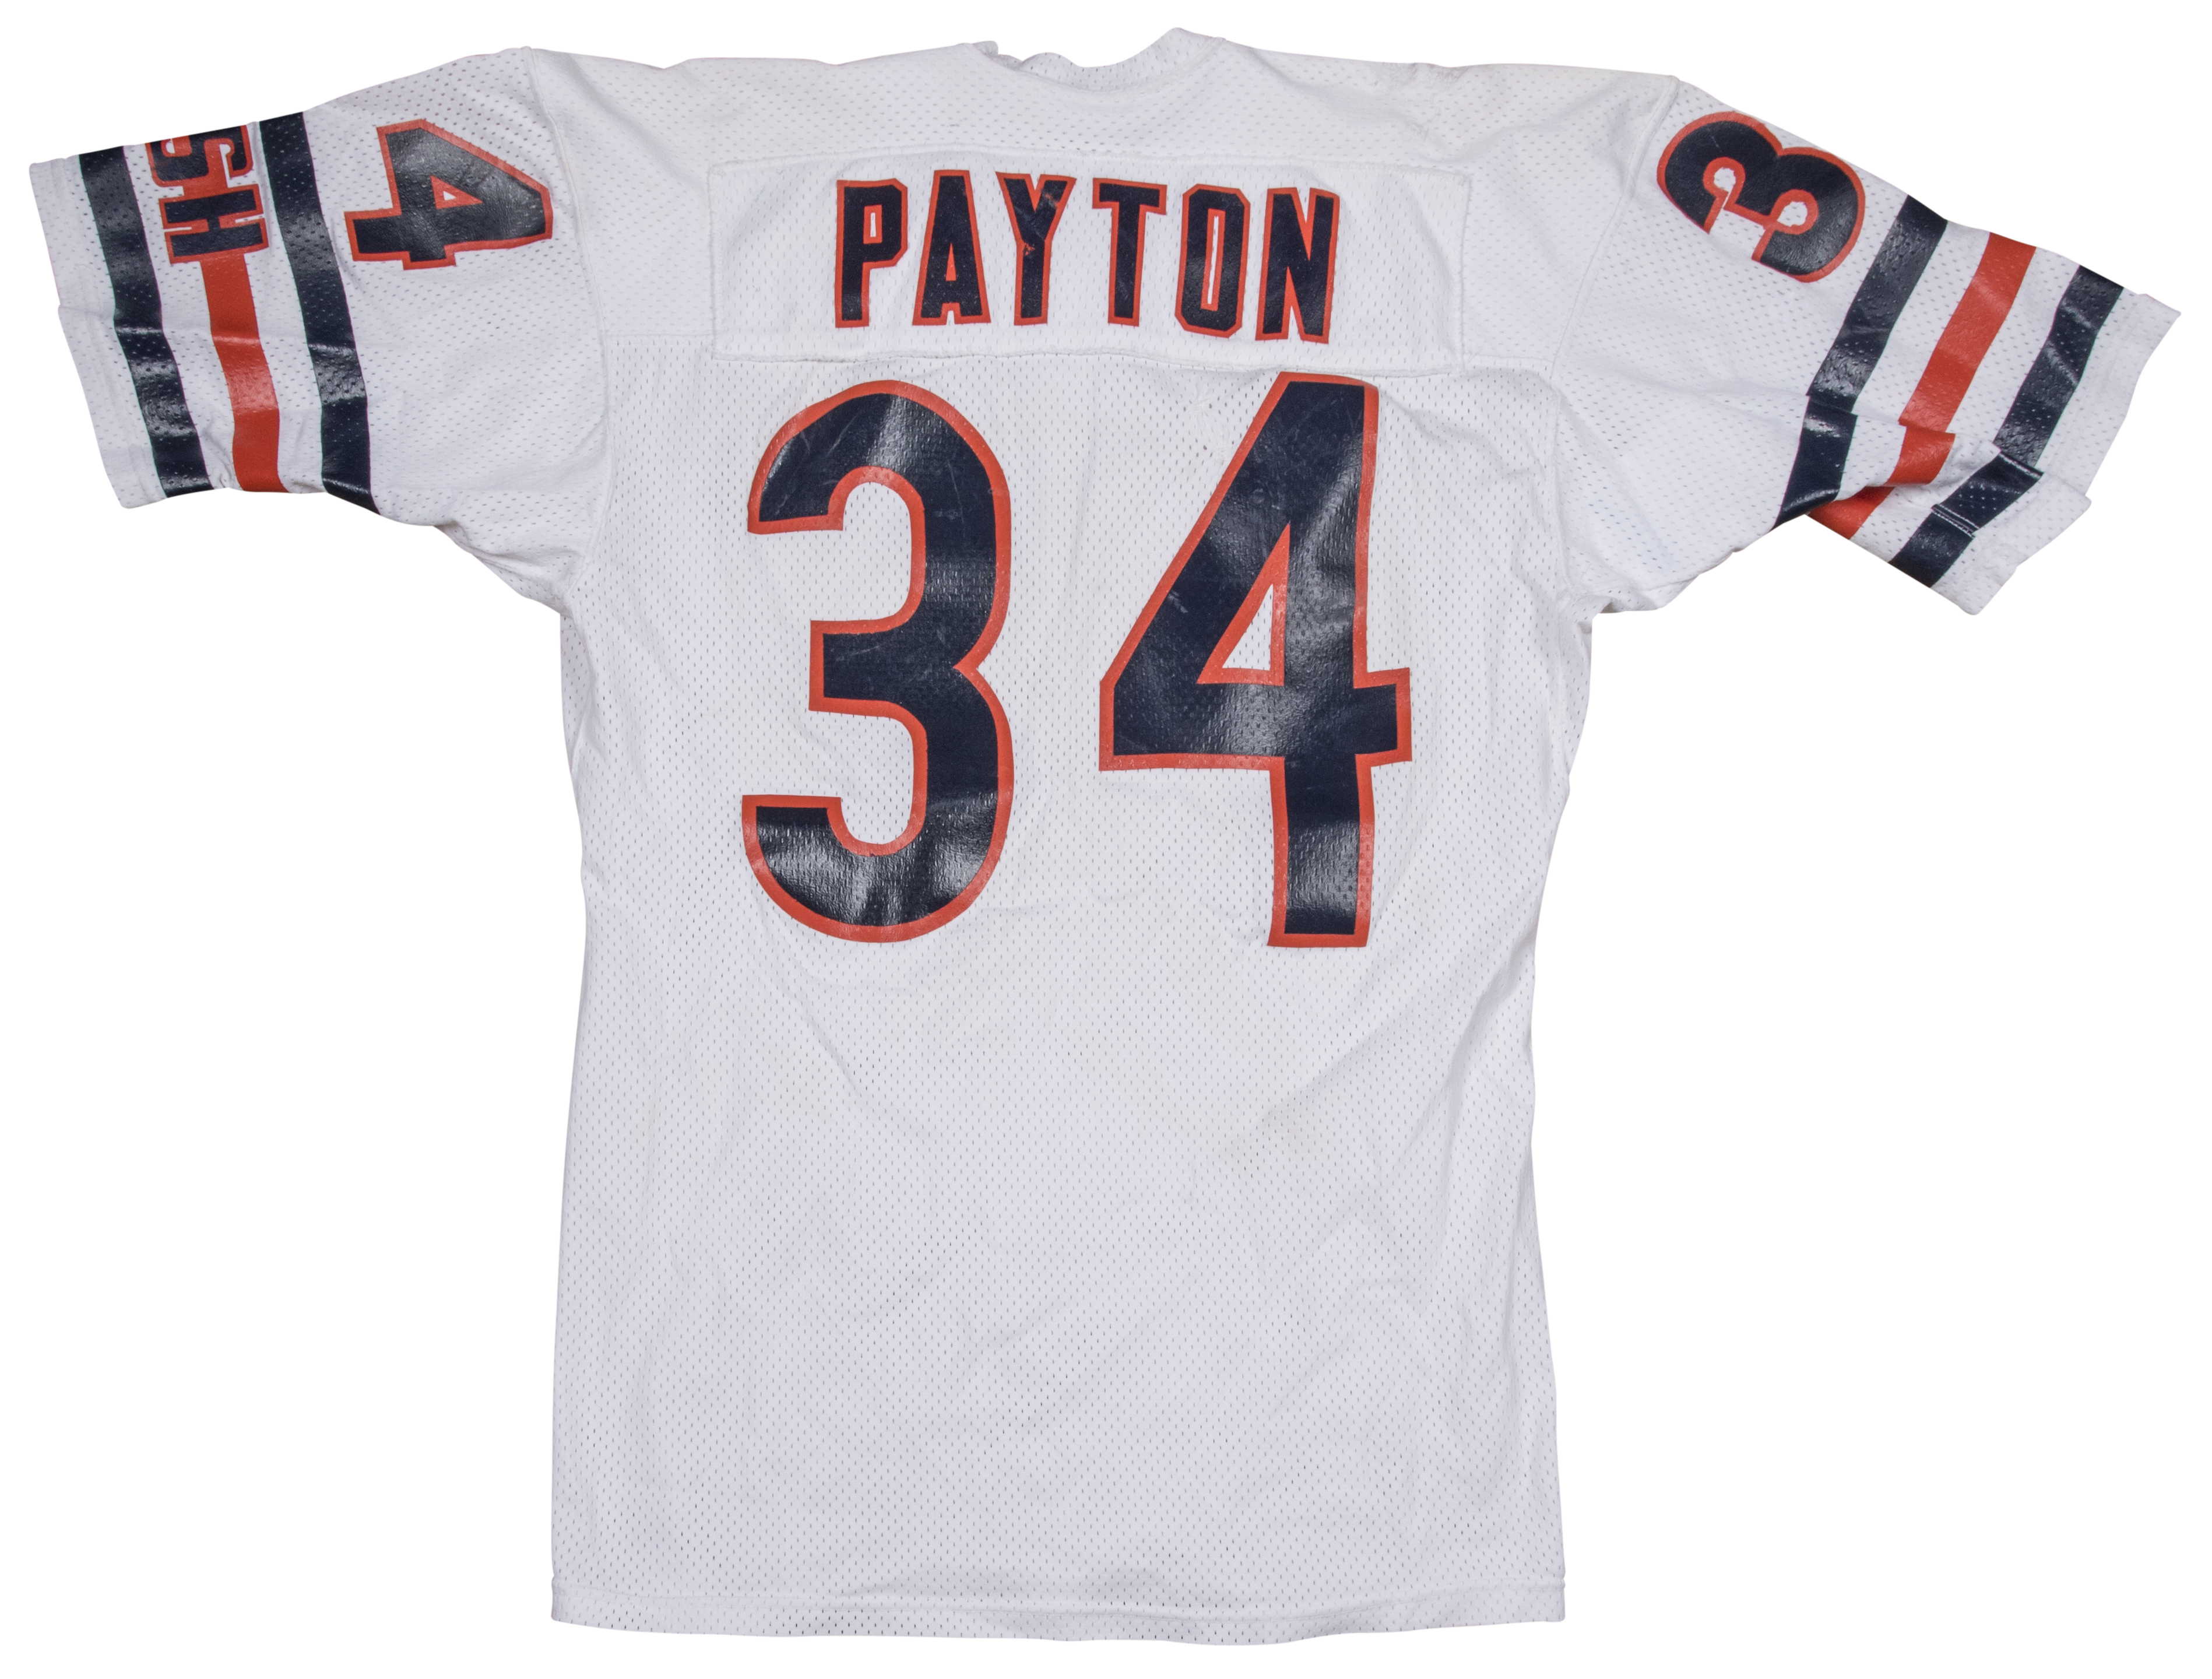 9692005a84c Lot Detail - 1984-87 Walter Payton Game Used Chicago Bears Road Uniform -  Jersey, Pants and